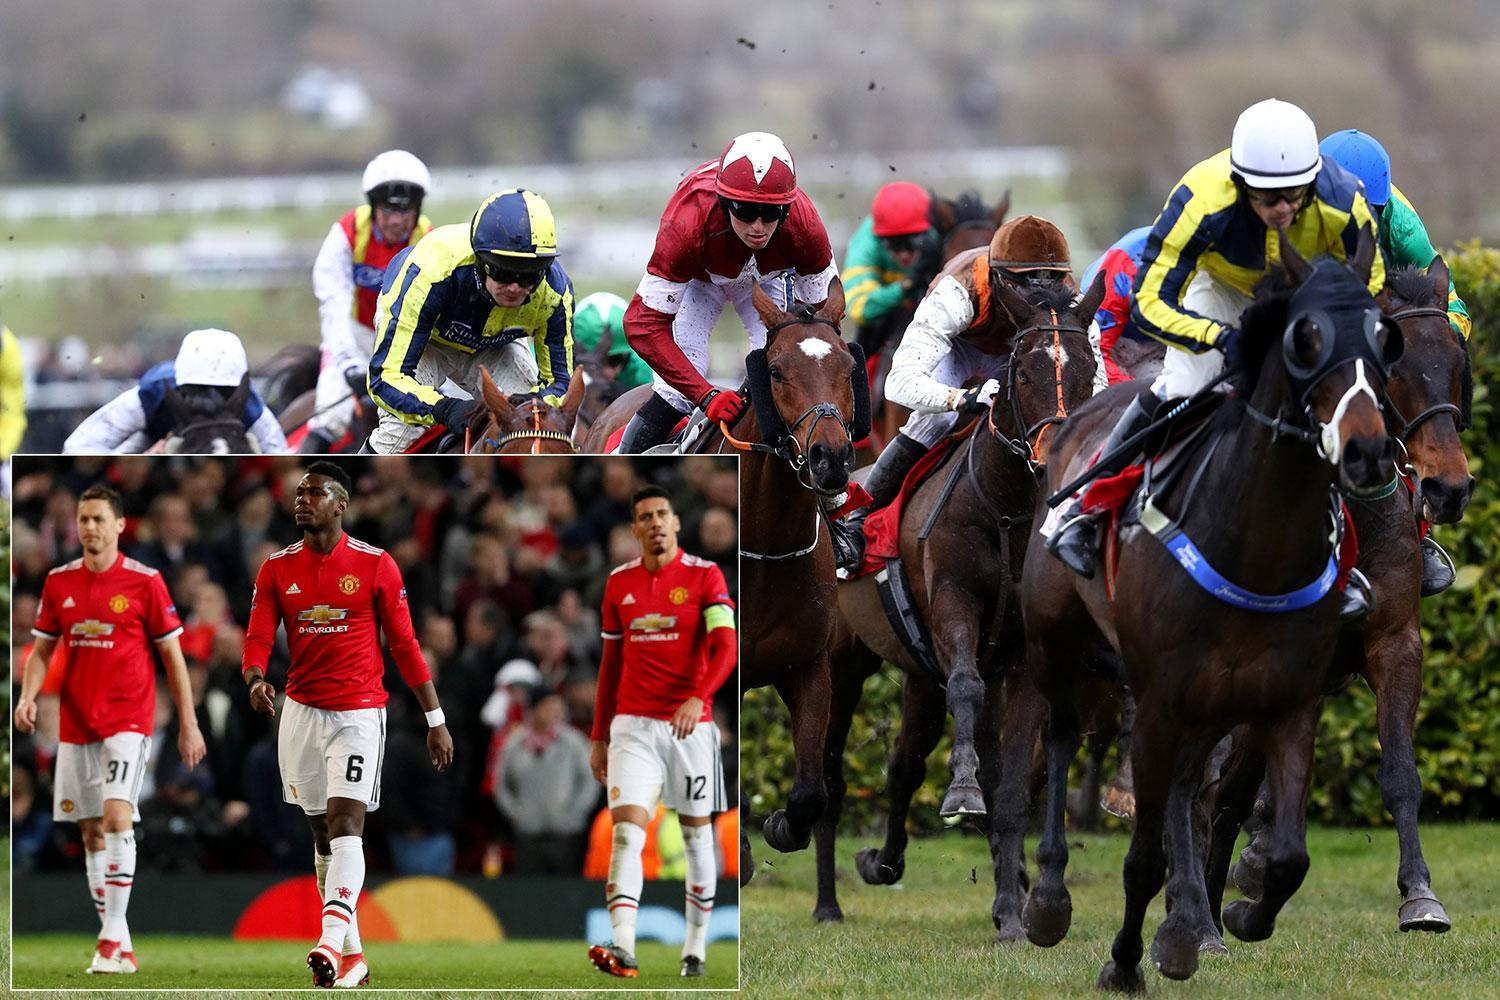 Manchester United flops cancel Cheltenham race day after dismal Sevilla defeat dumped them out of Champions League